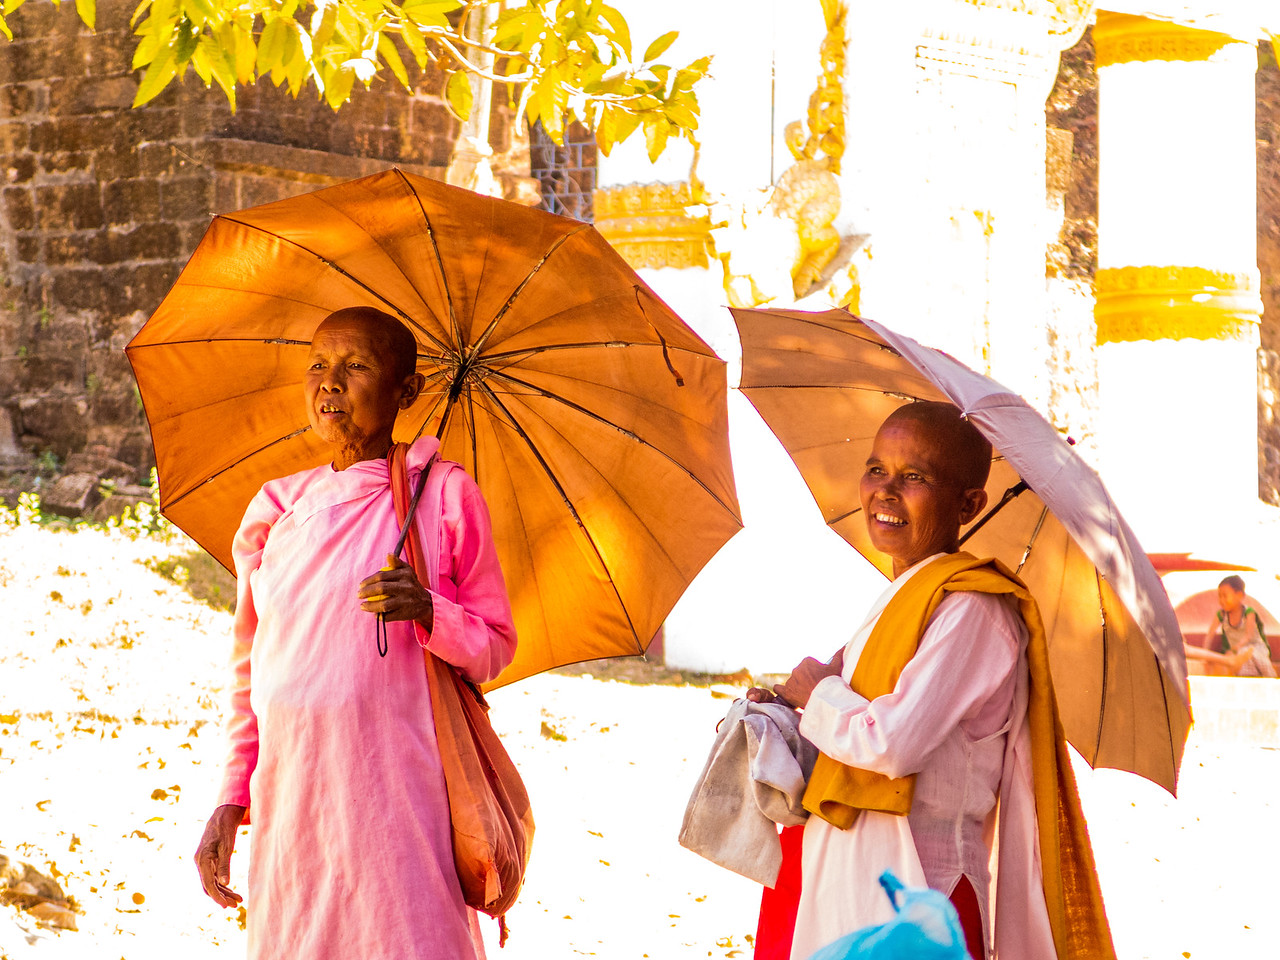 A Pair of Buddhist Nuns Walking Outside a Pagoda in Mrauk U